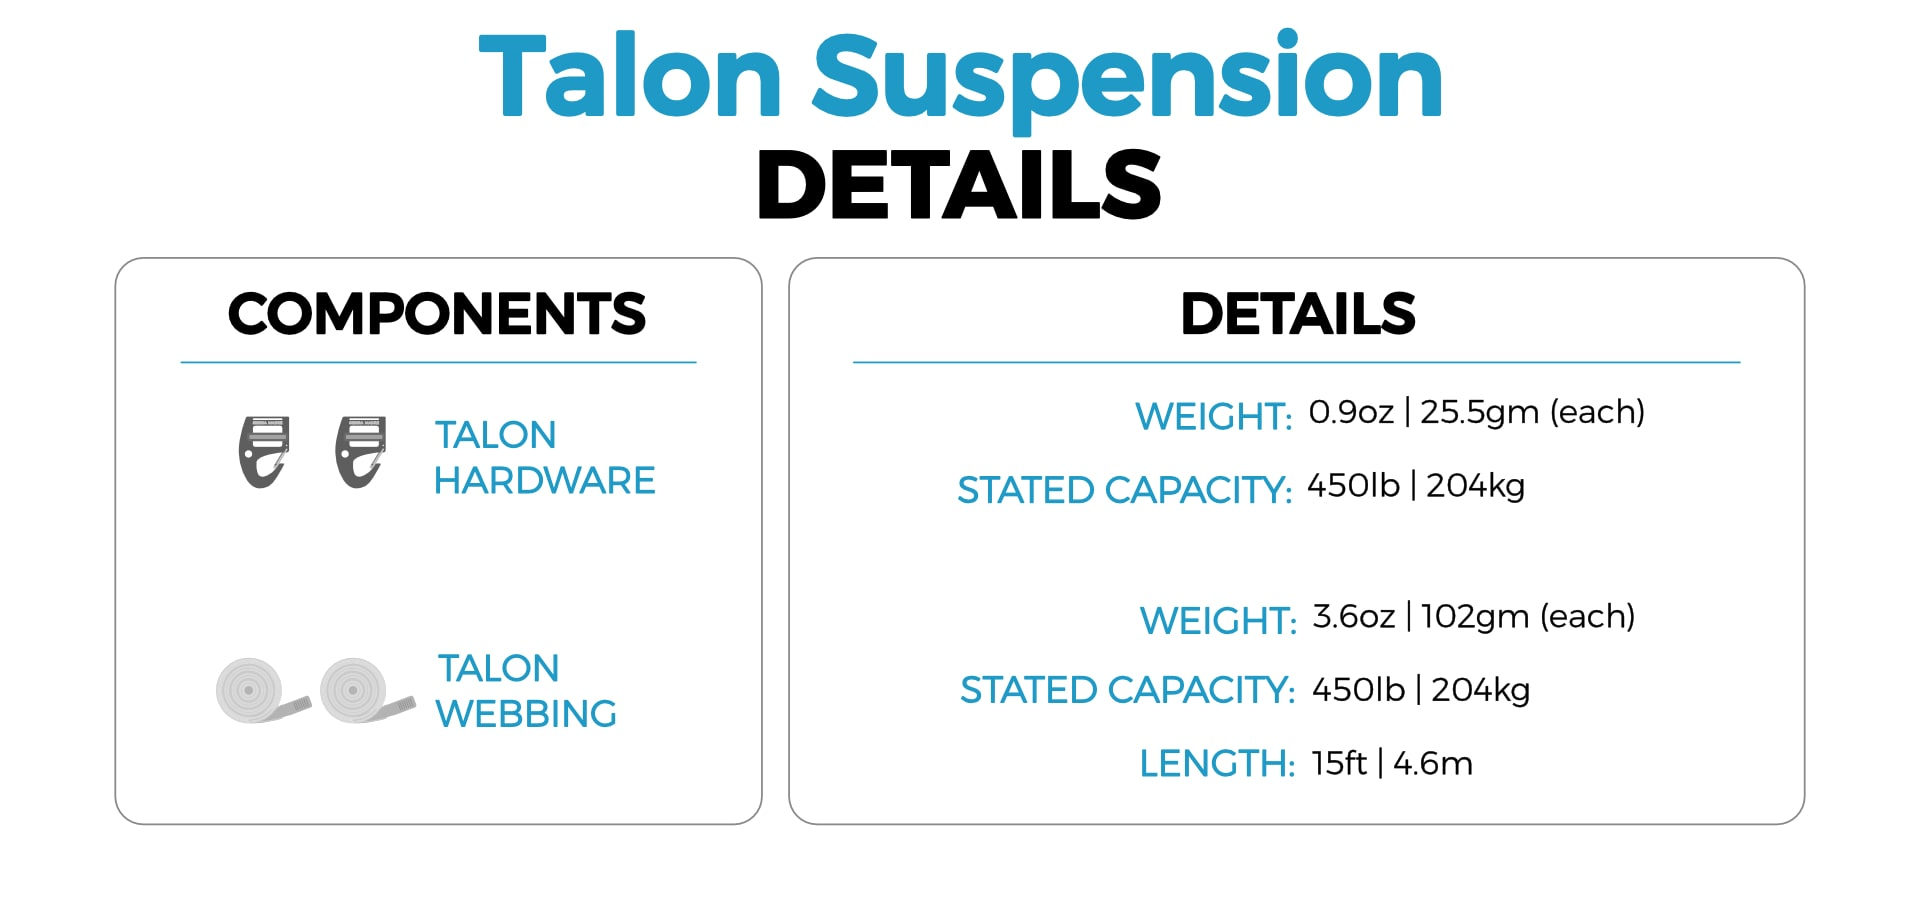 Talon Hammock Suspension details weights and capacities.